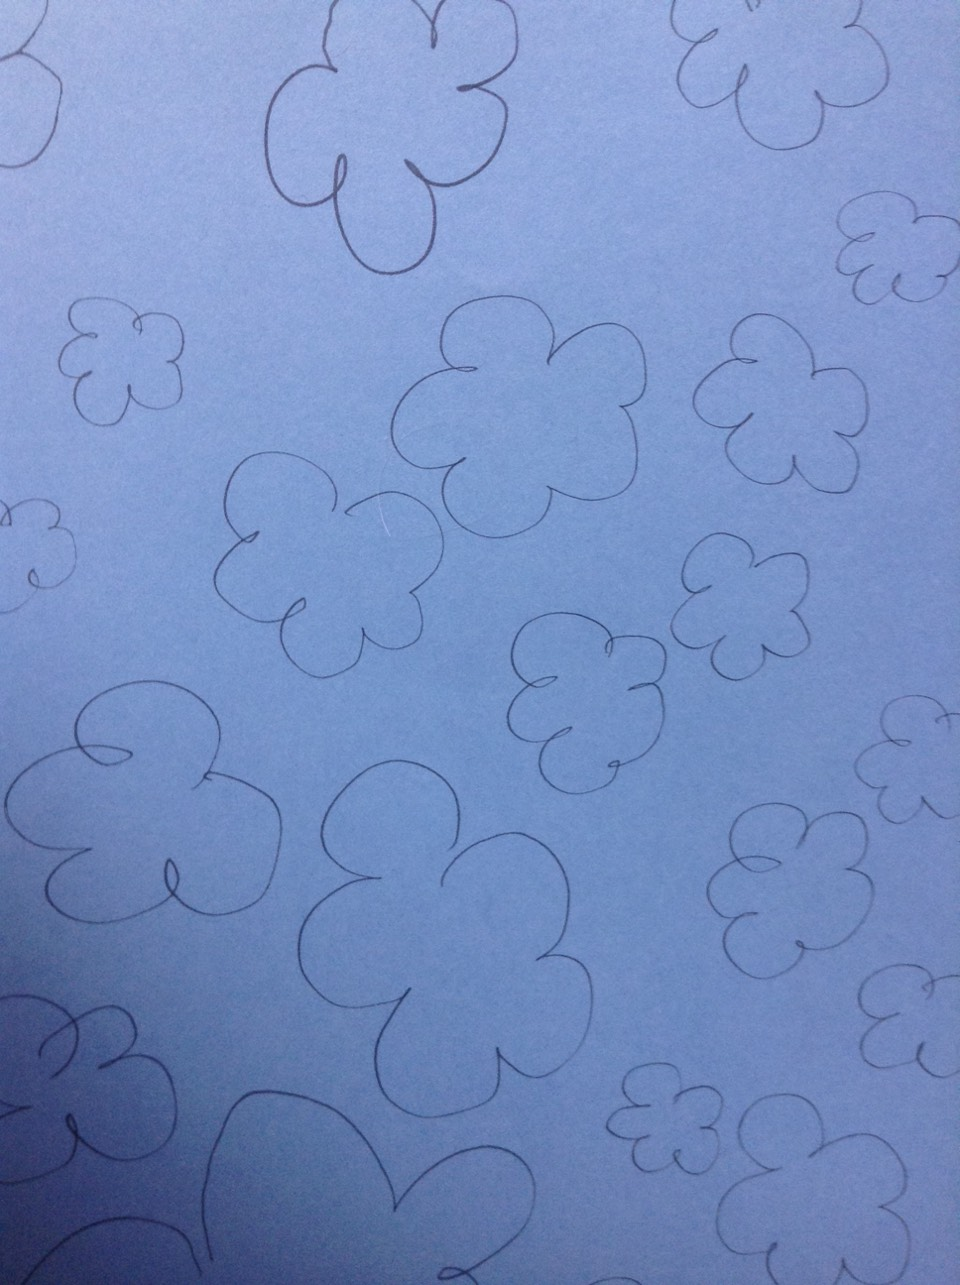 Draw some clouds and then cut them out